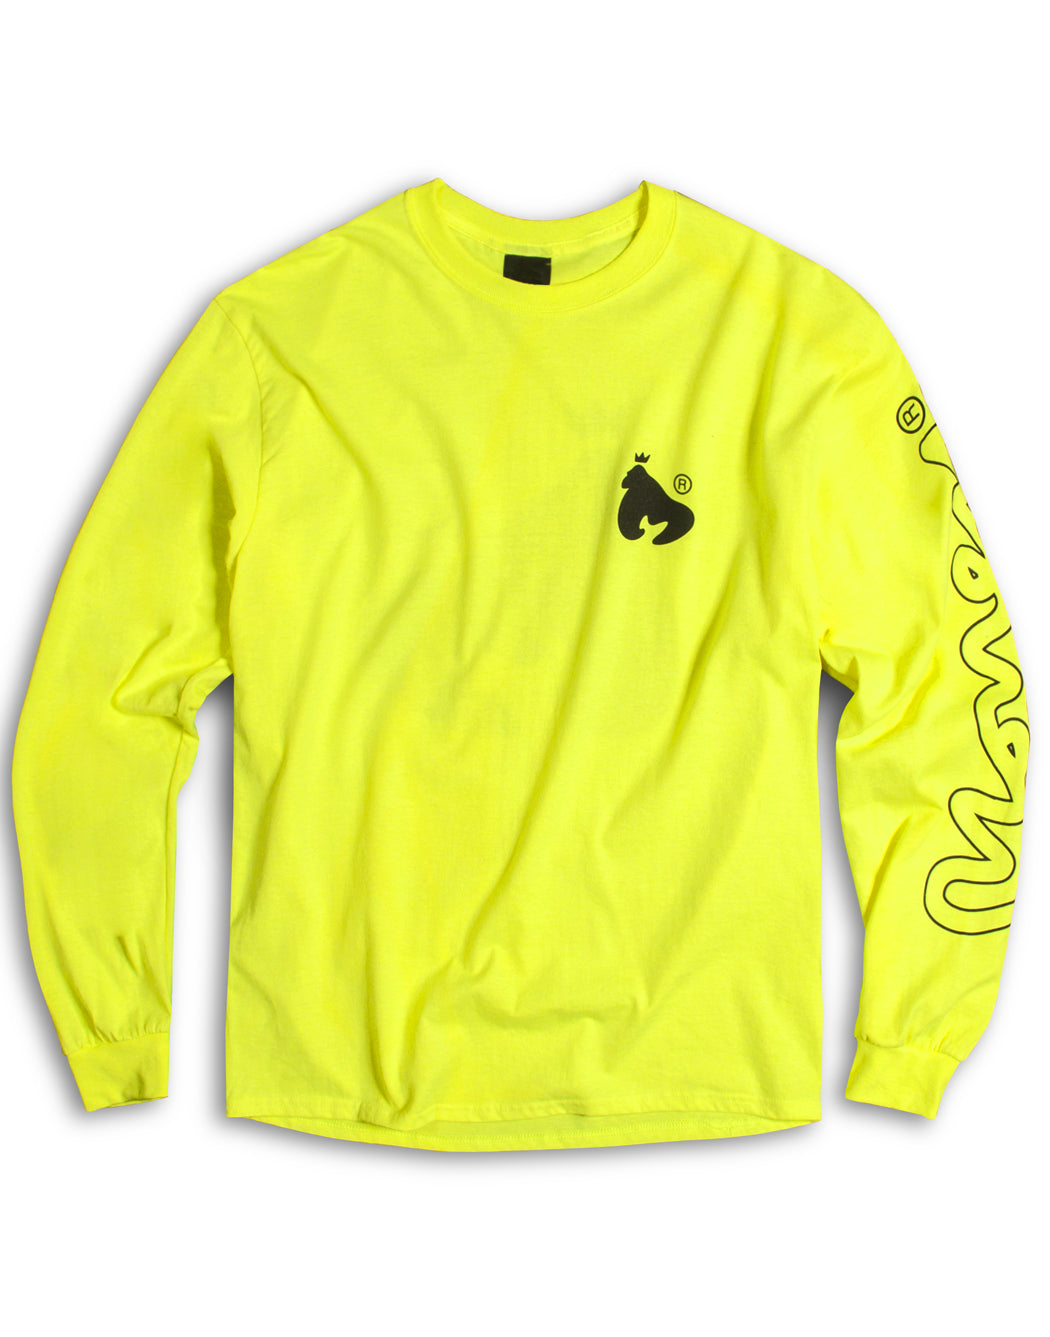 Money Clothing neon ape logo l/s tee